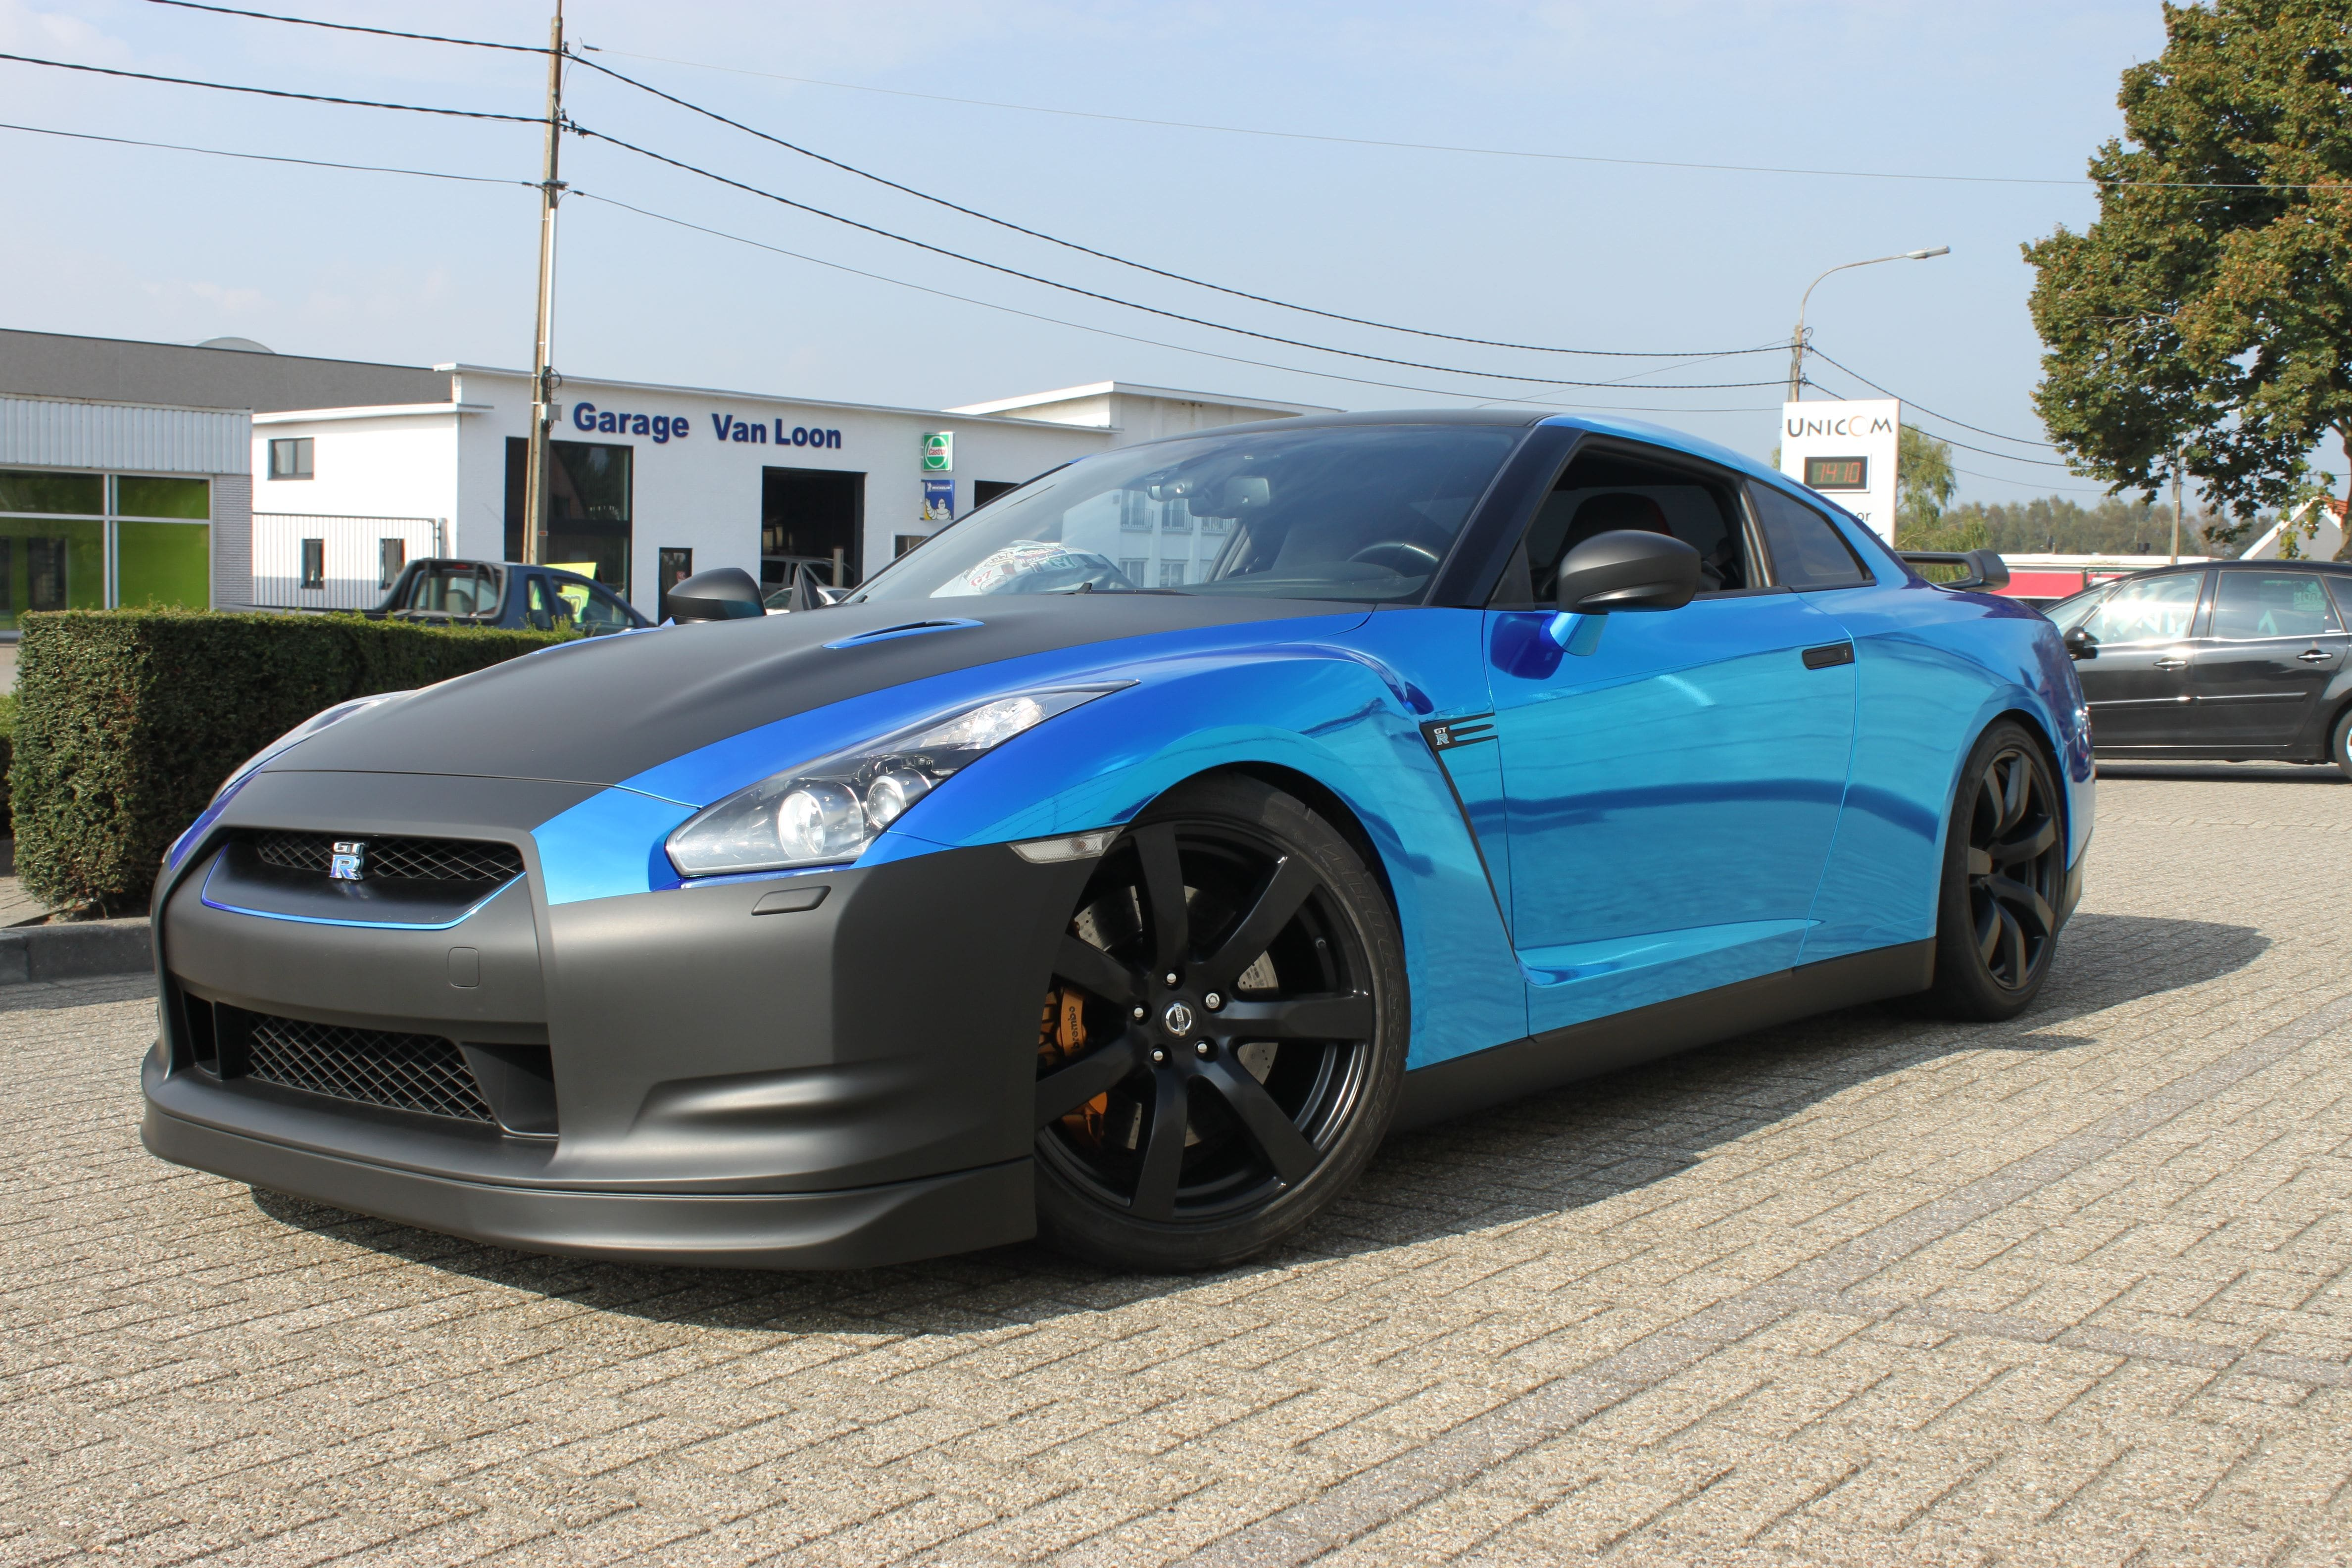 Nissan GT-R met Blue Chrome Wrap, Carwrapping door Wrapmyride.nu Foto-nr:6482, ©2020